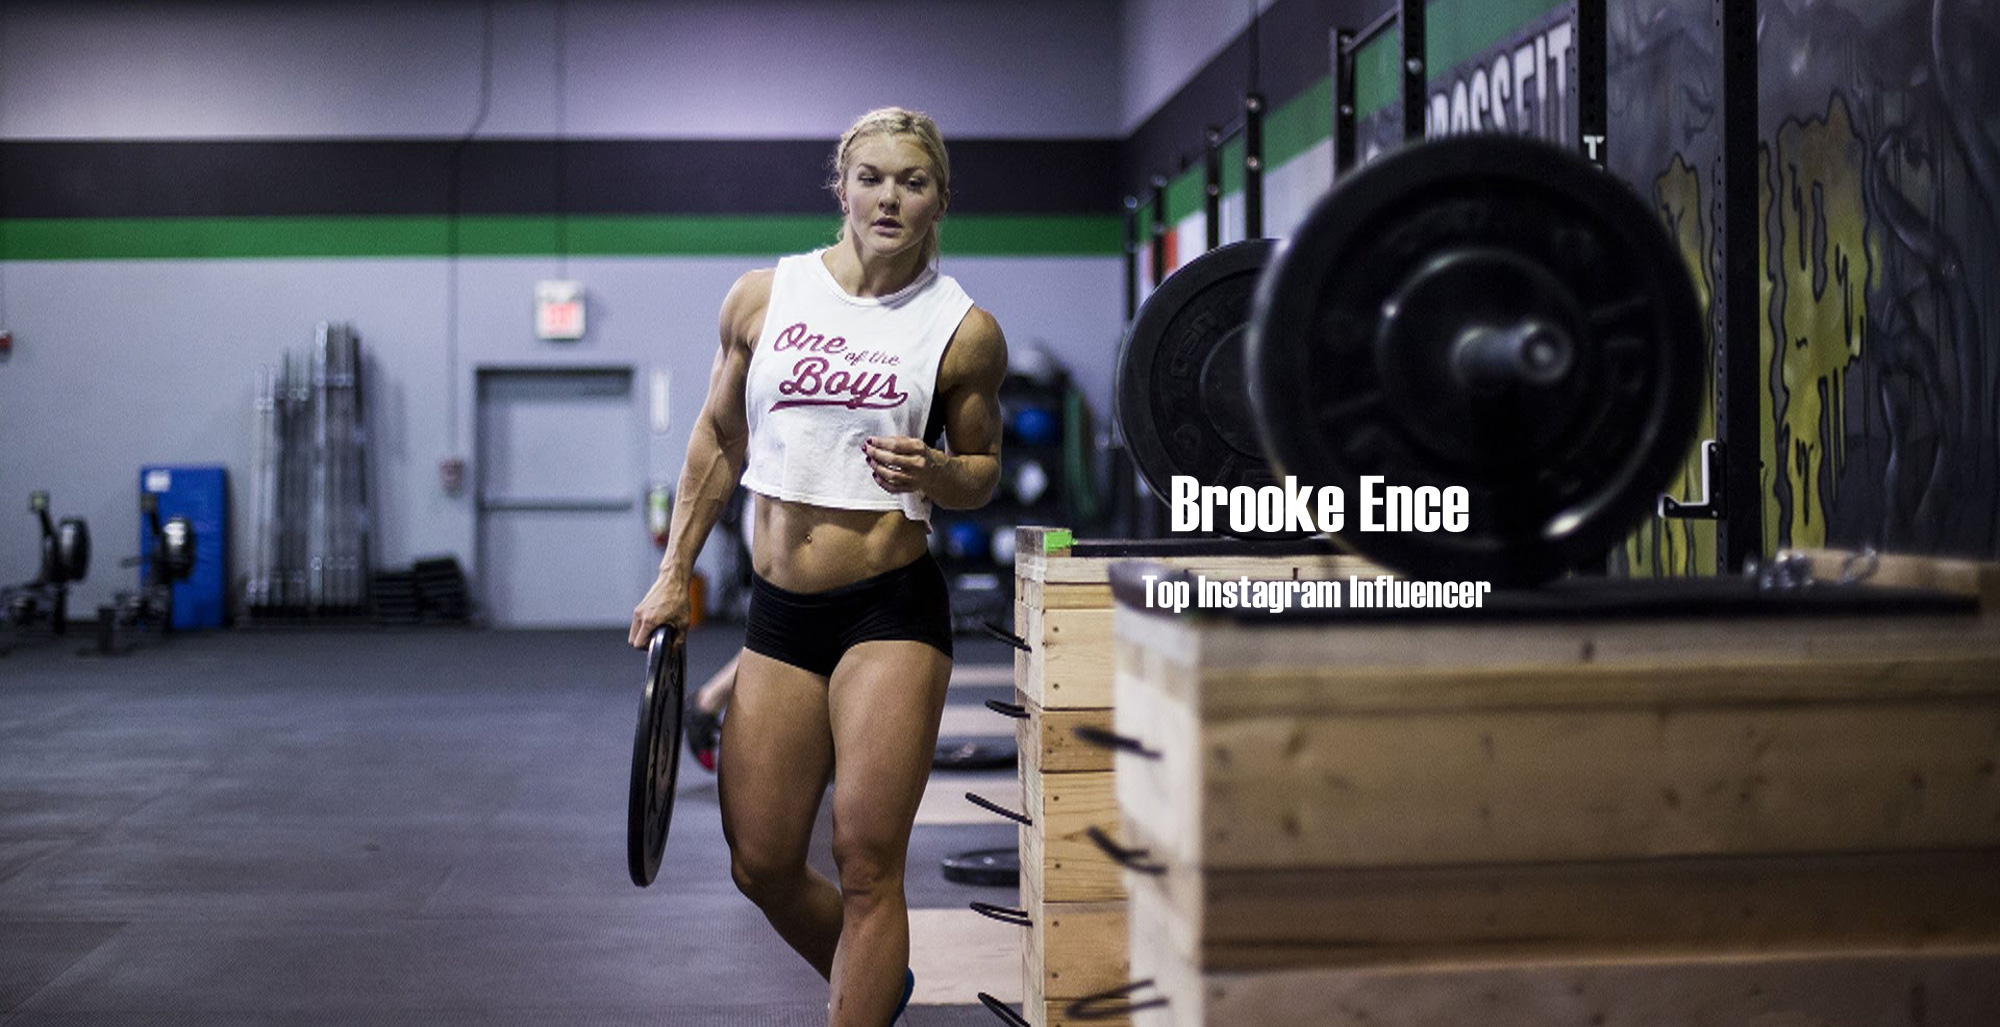 BrookeEnce-Instagram Influencer